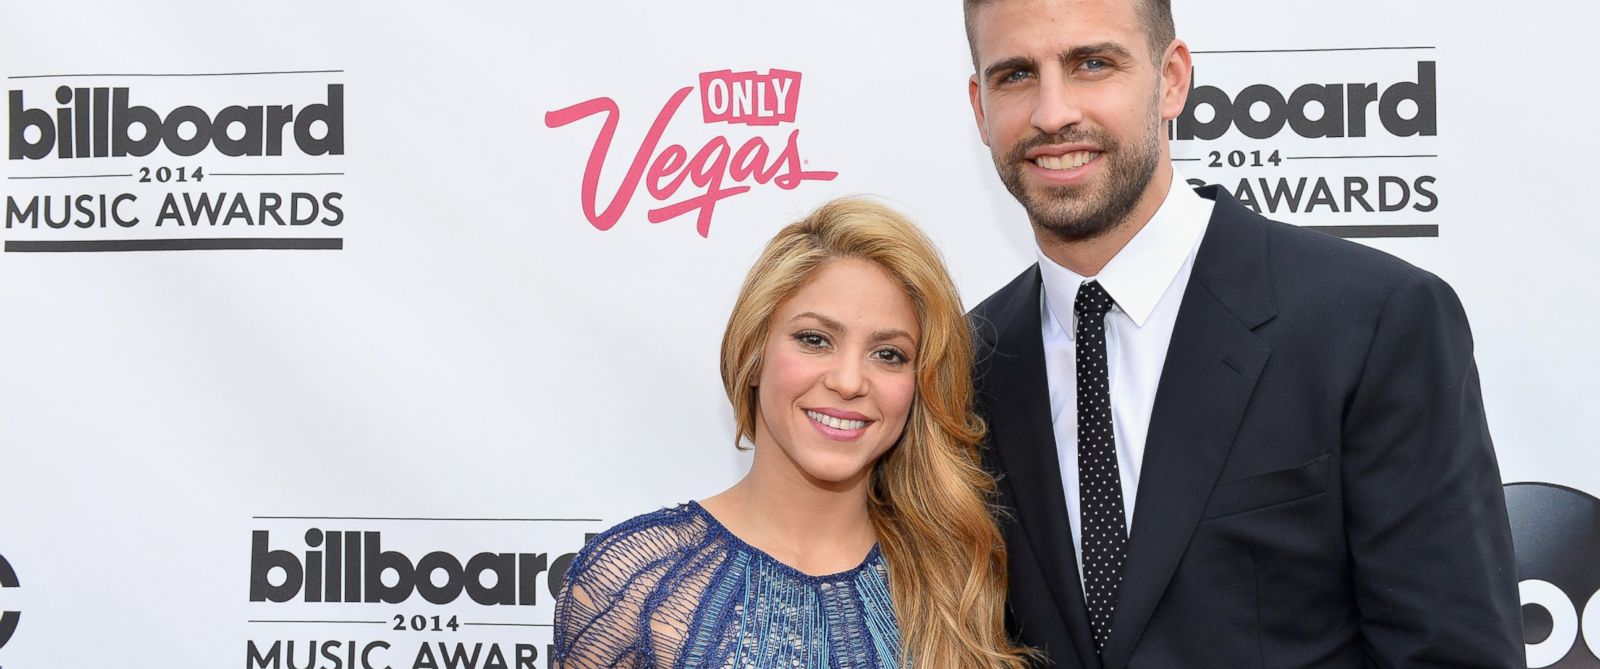 PHOTO: Shakira and Gerard Pique attend the 2014 Billboard Music Awards on May 18, 2014 in Las Vegas.